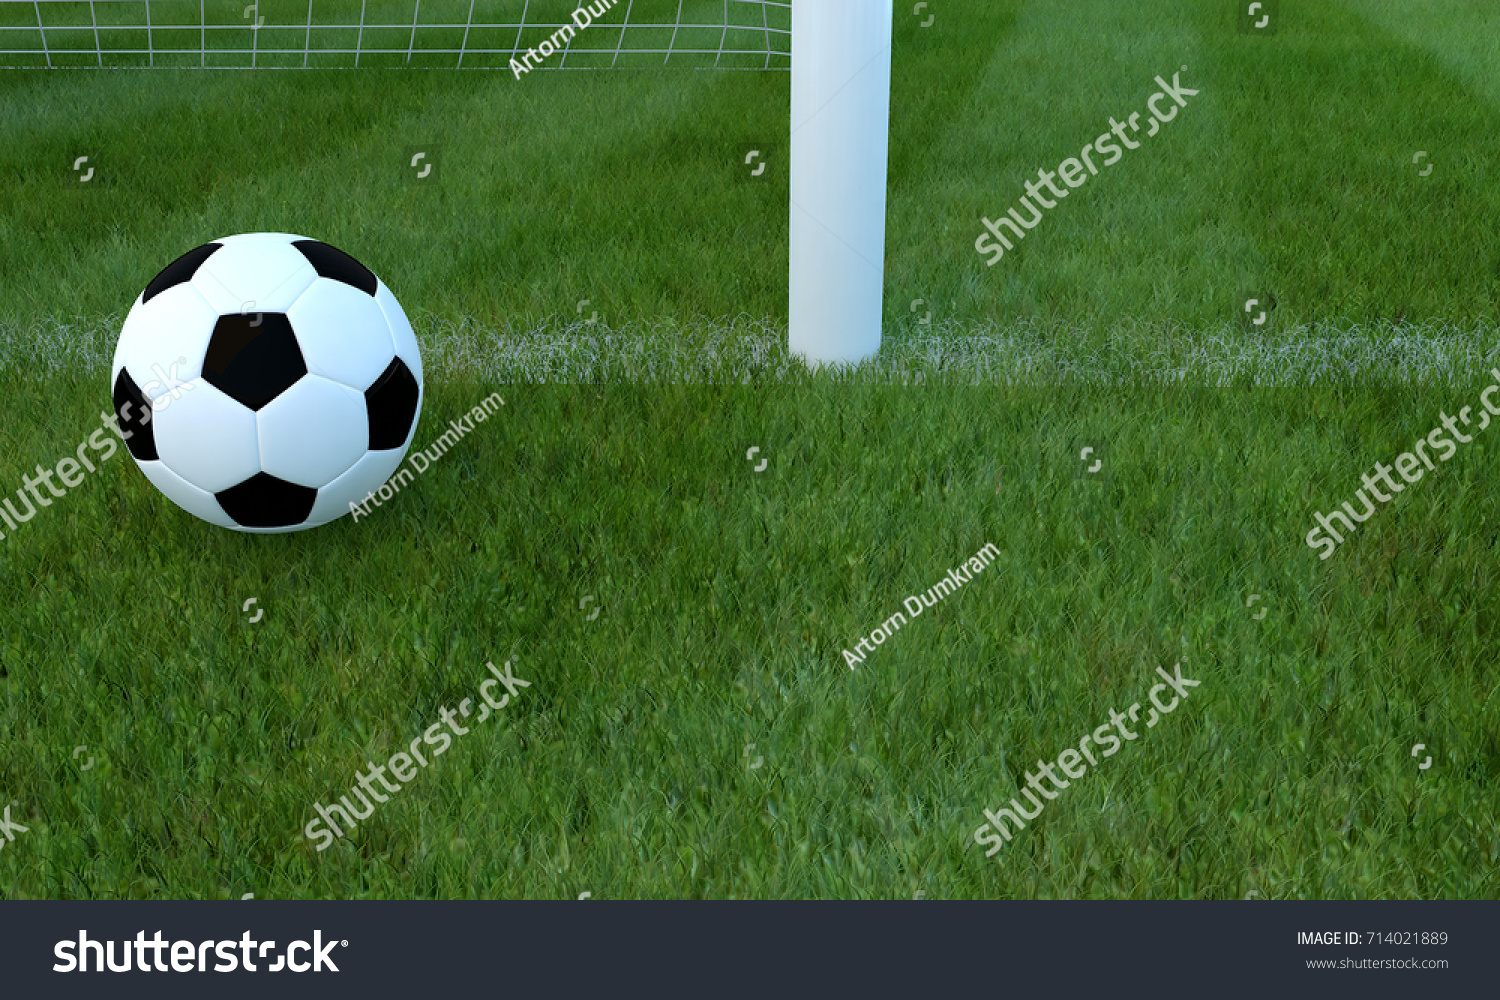 grass soccer field with goal. Football Black And White Color On Grass Soccer Field Near Goal Line.3D Rendering With R